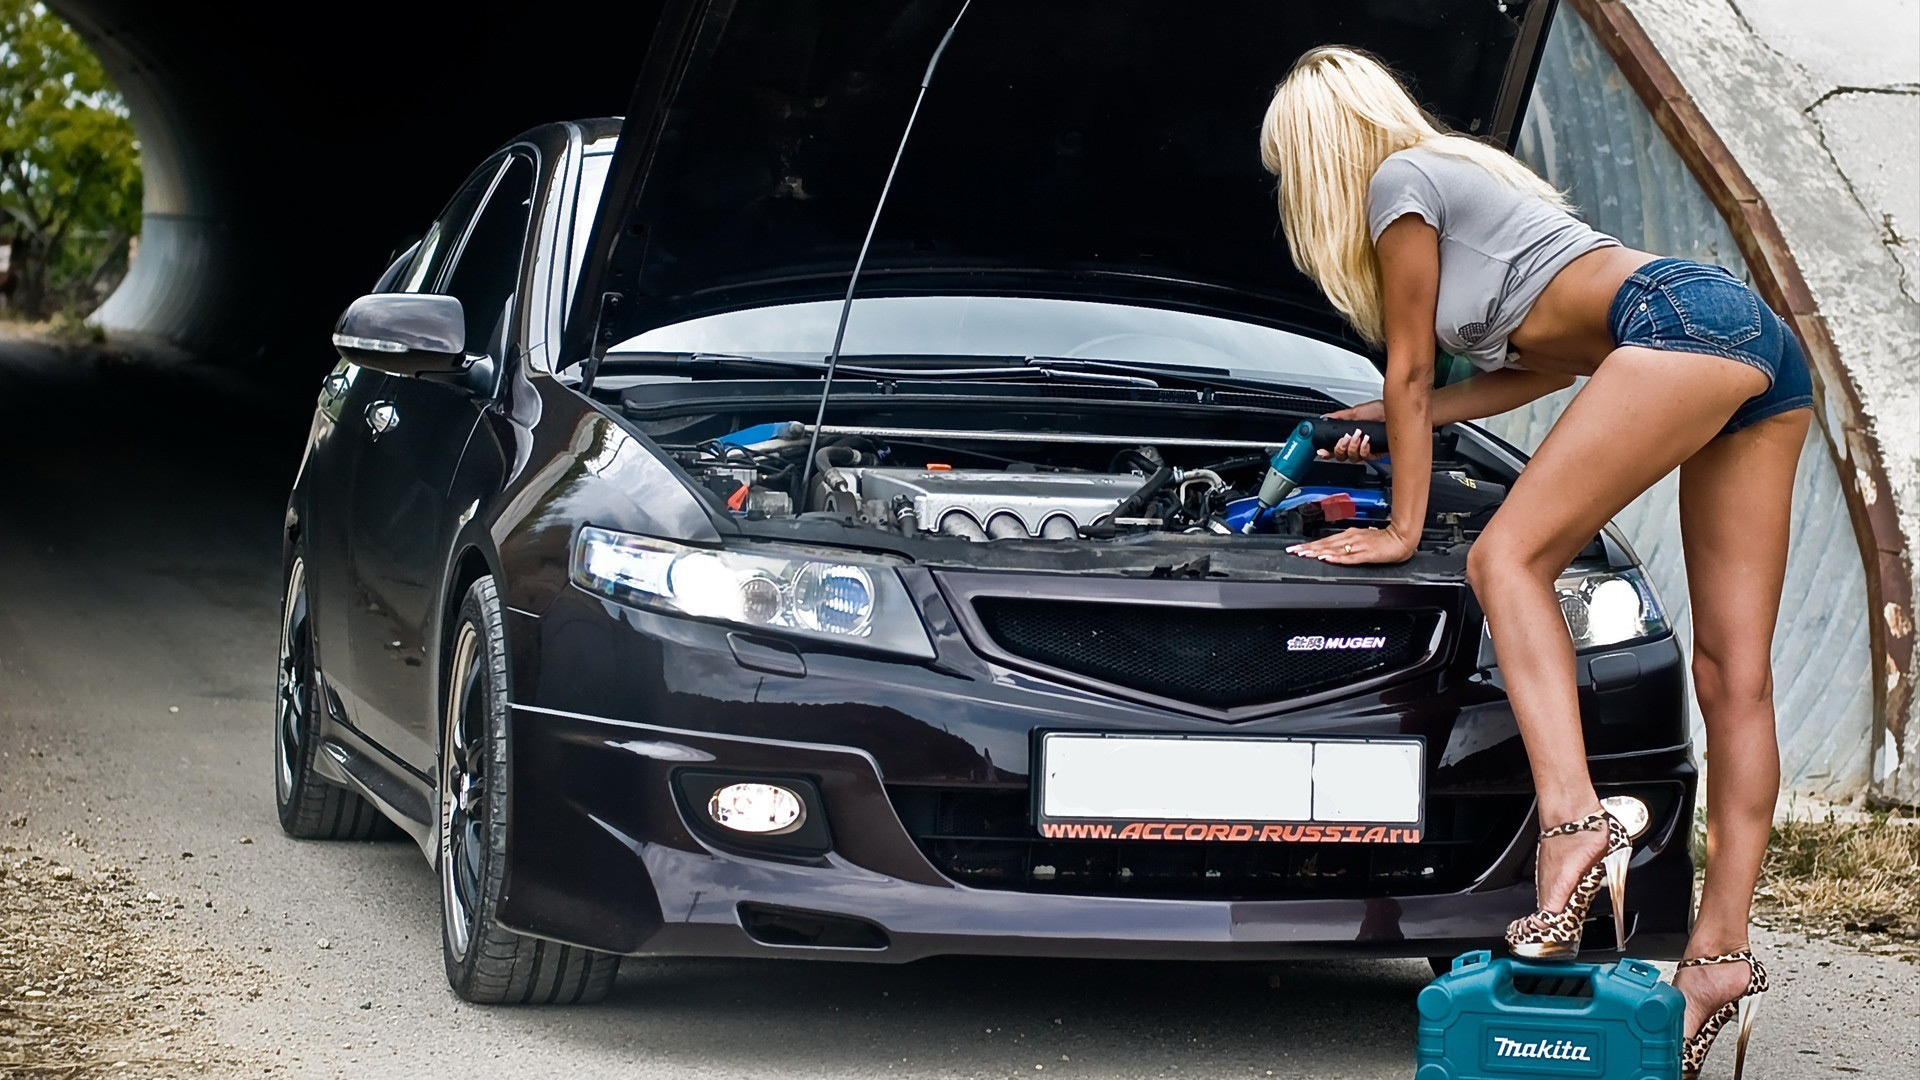 Girl Mechanic Nude the hottest mechanic has sexy long legs and huge boobs hd